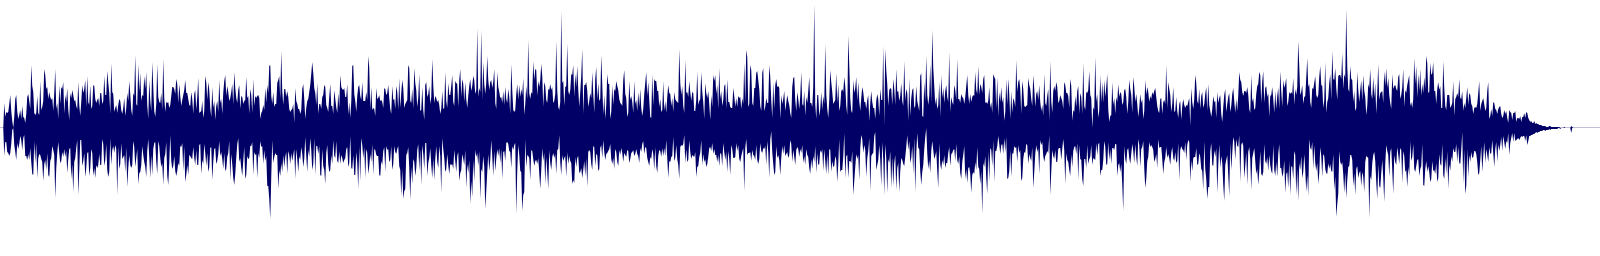 waveform of track #99325